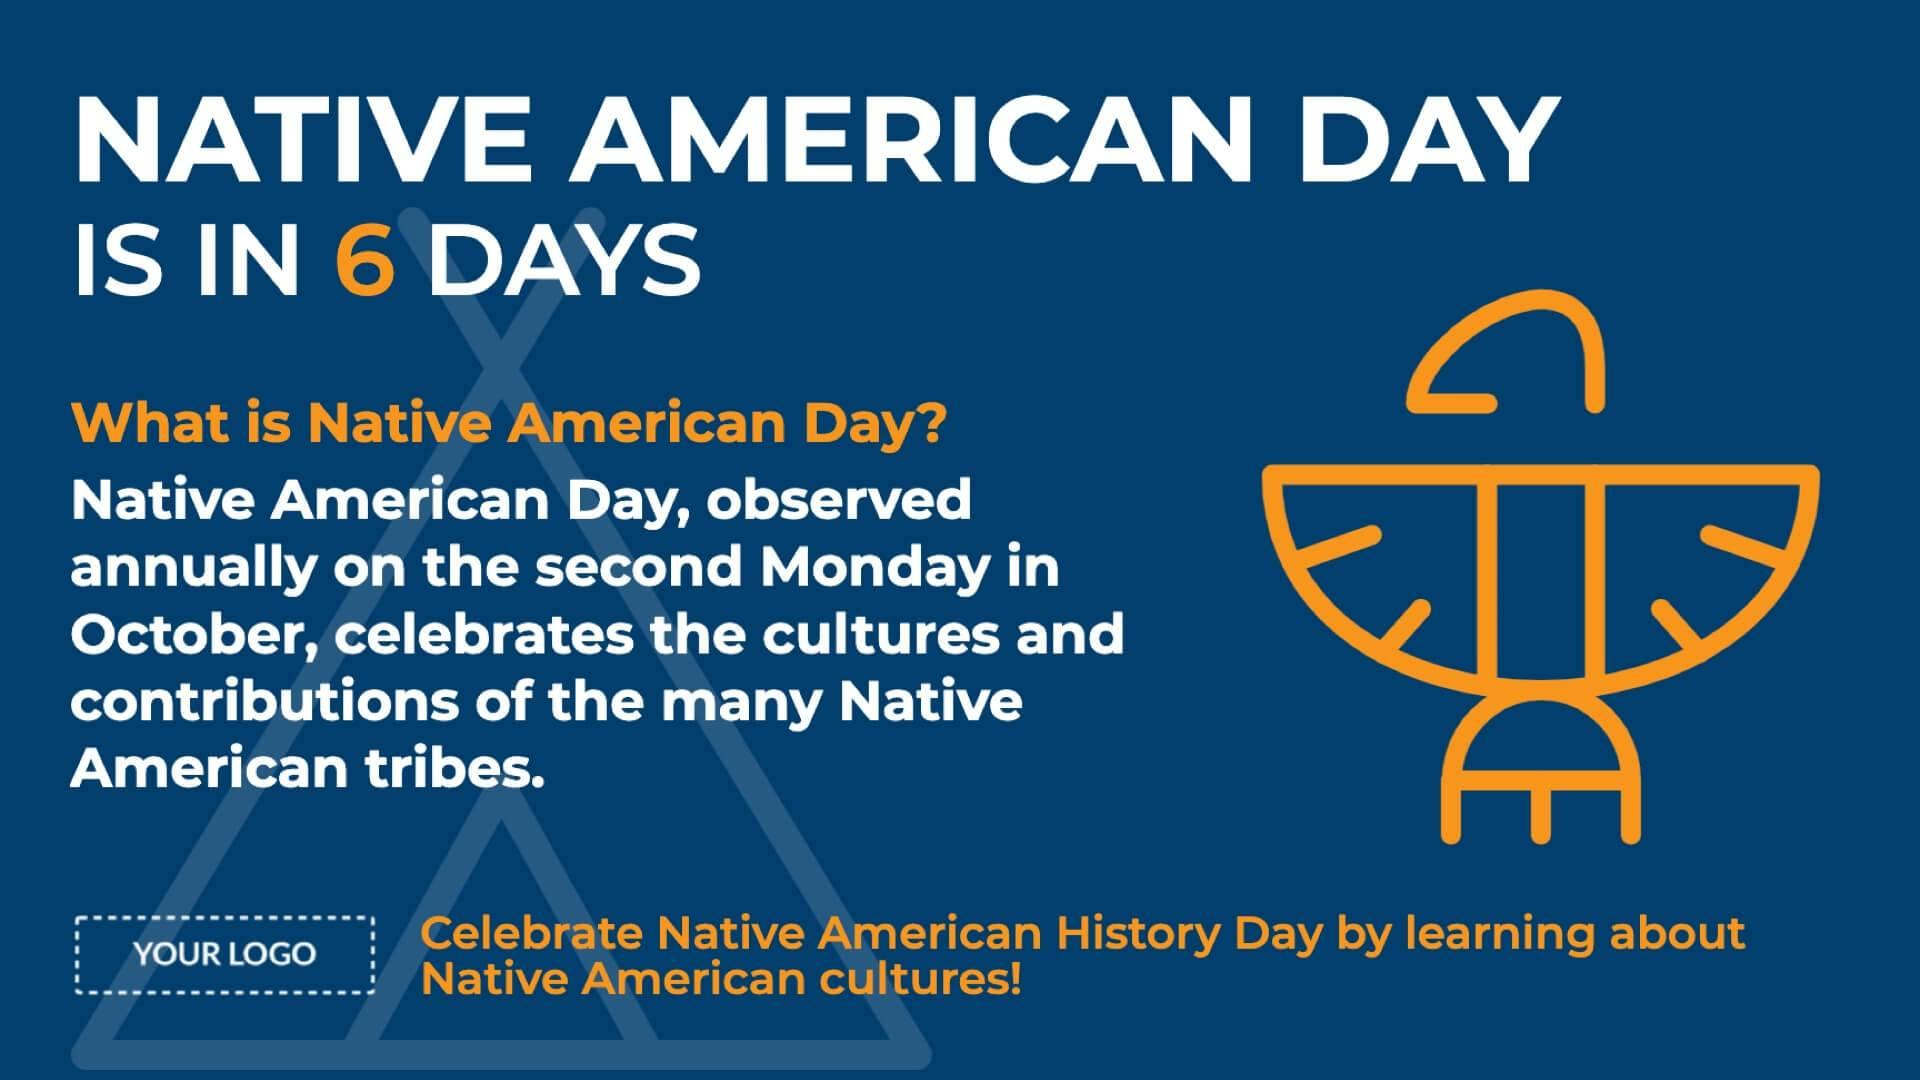 Holiday Native American Day Digital Signage Template